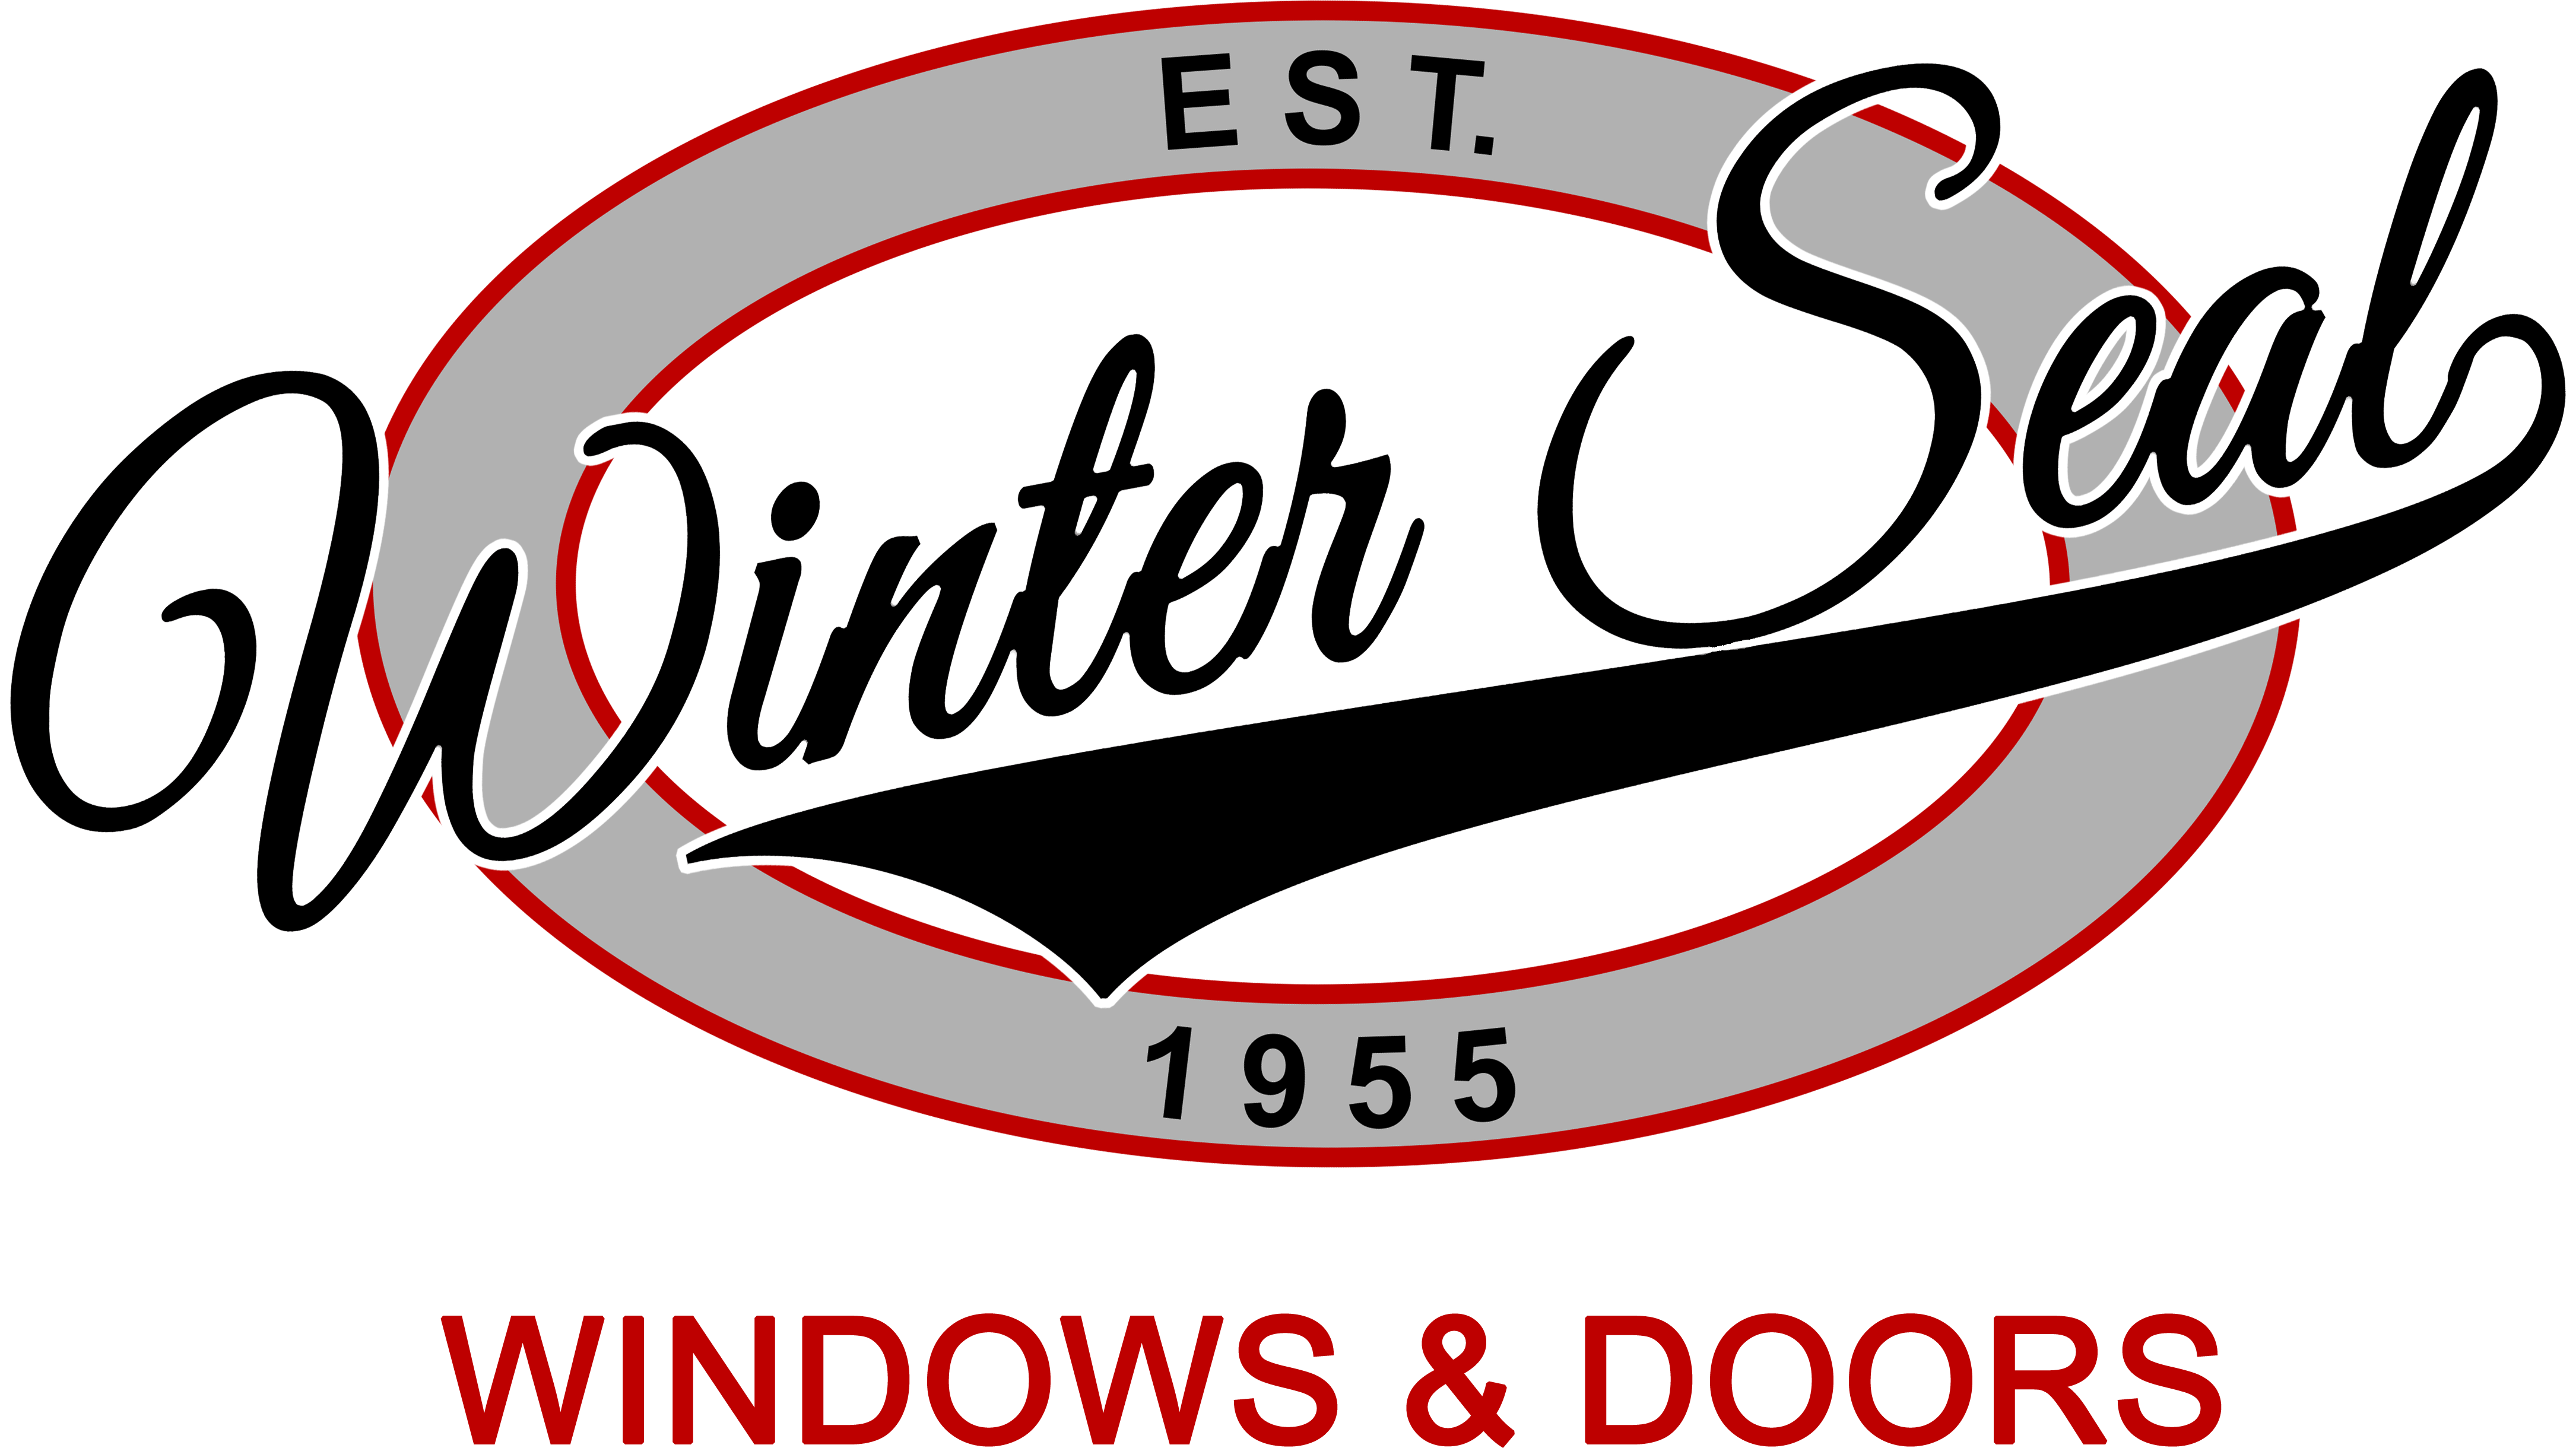 Pictures looking out of winter windows free clipart clip royalty free library Home ~ Winterseal clip royalty free library